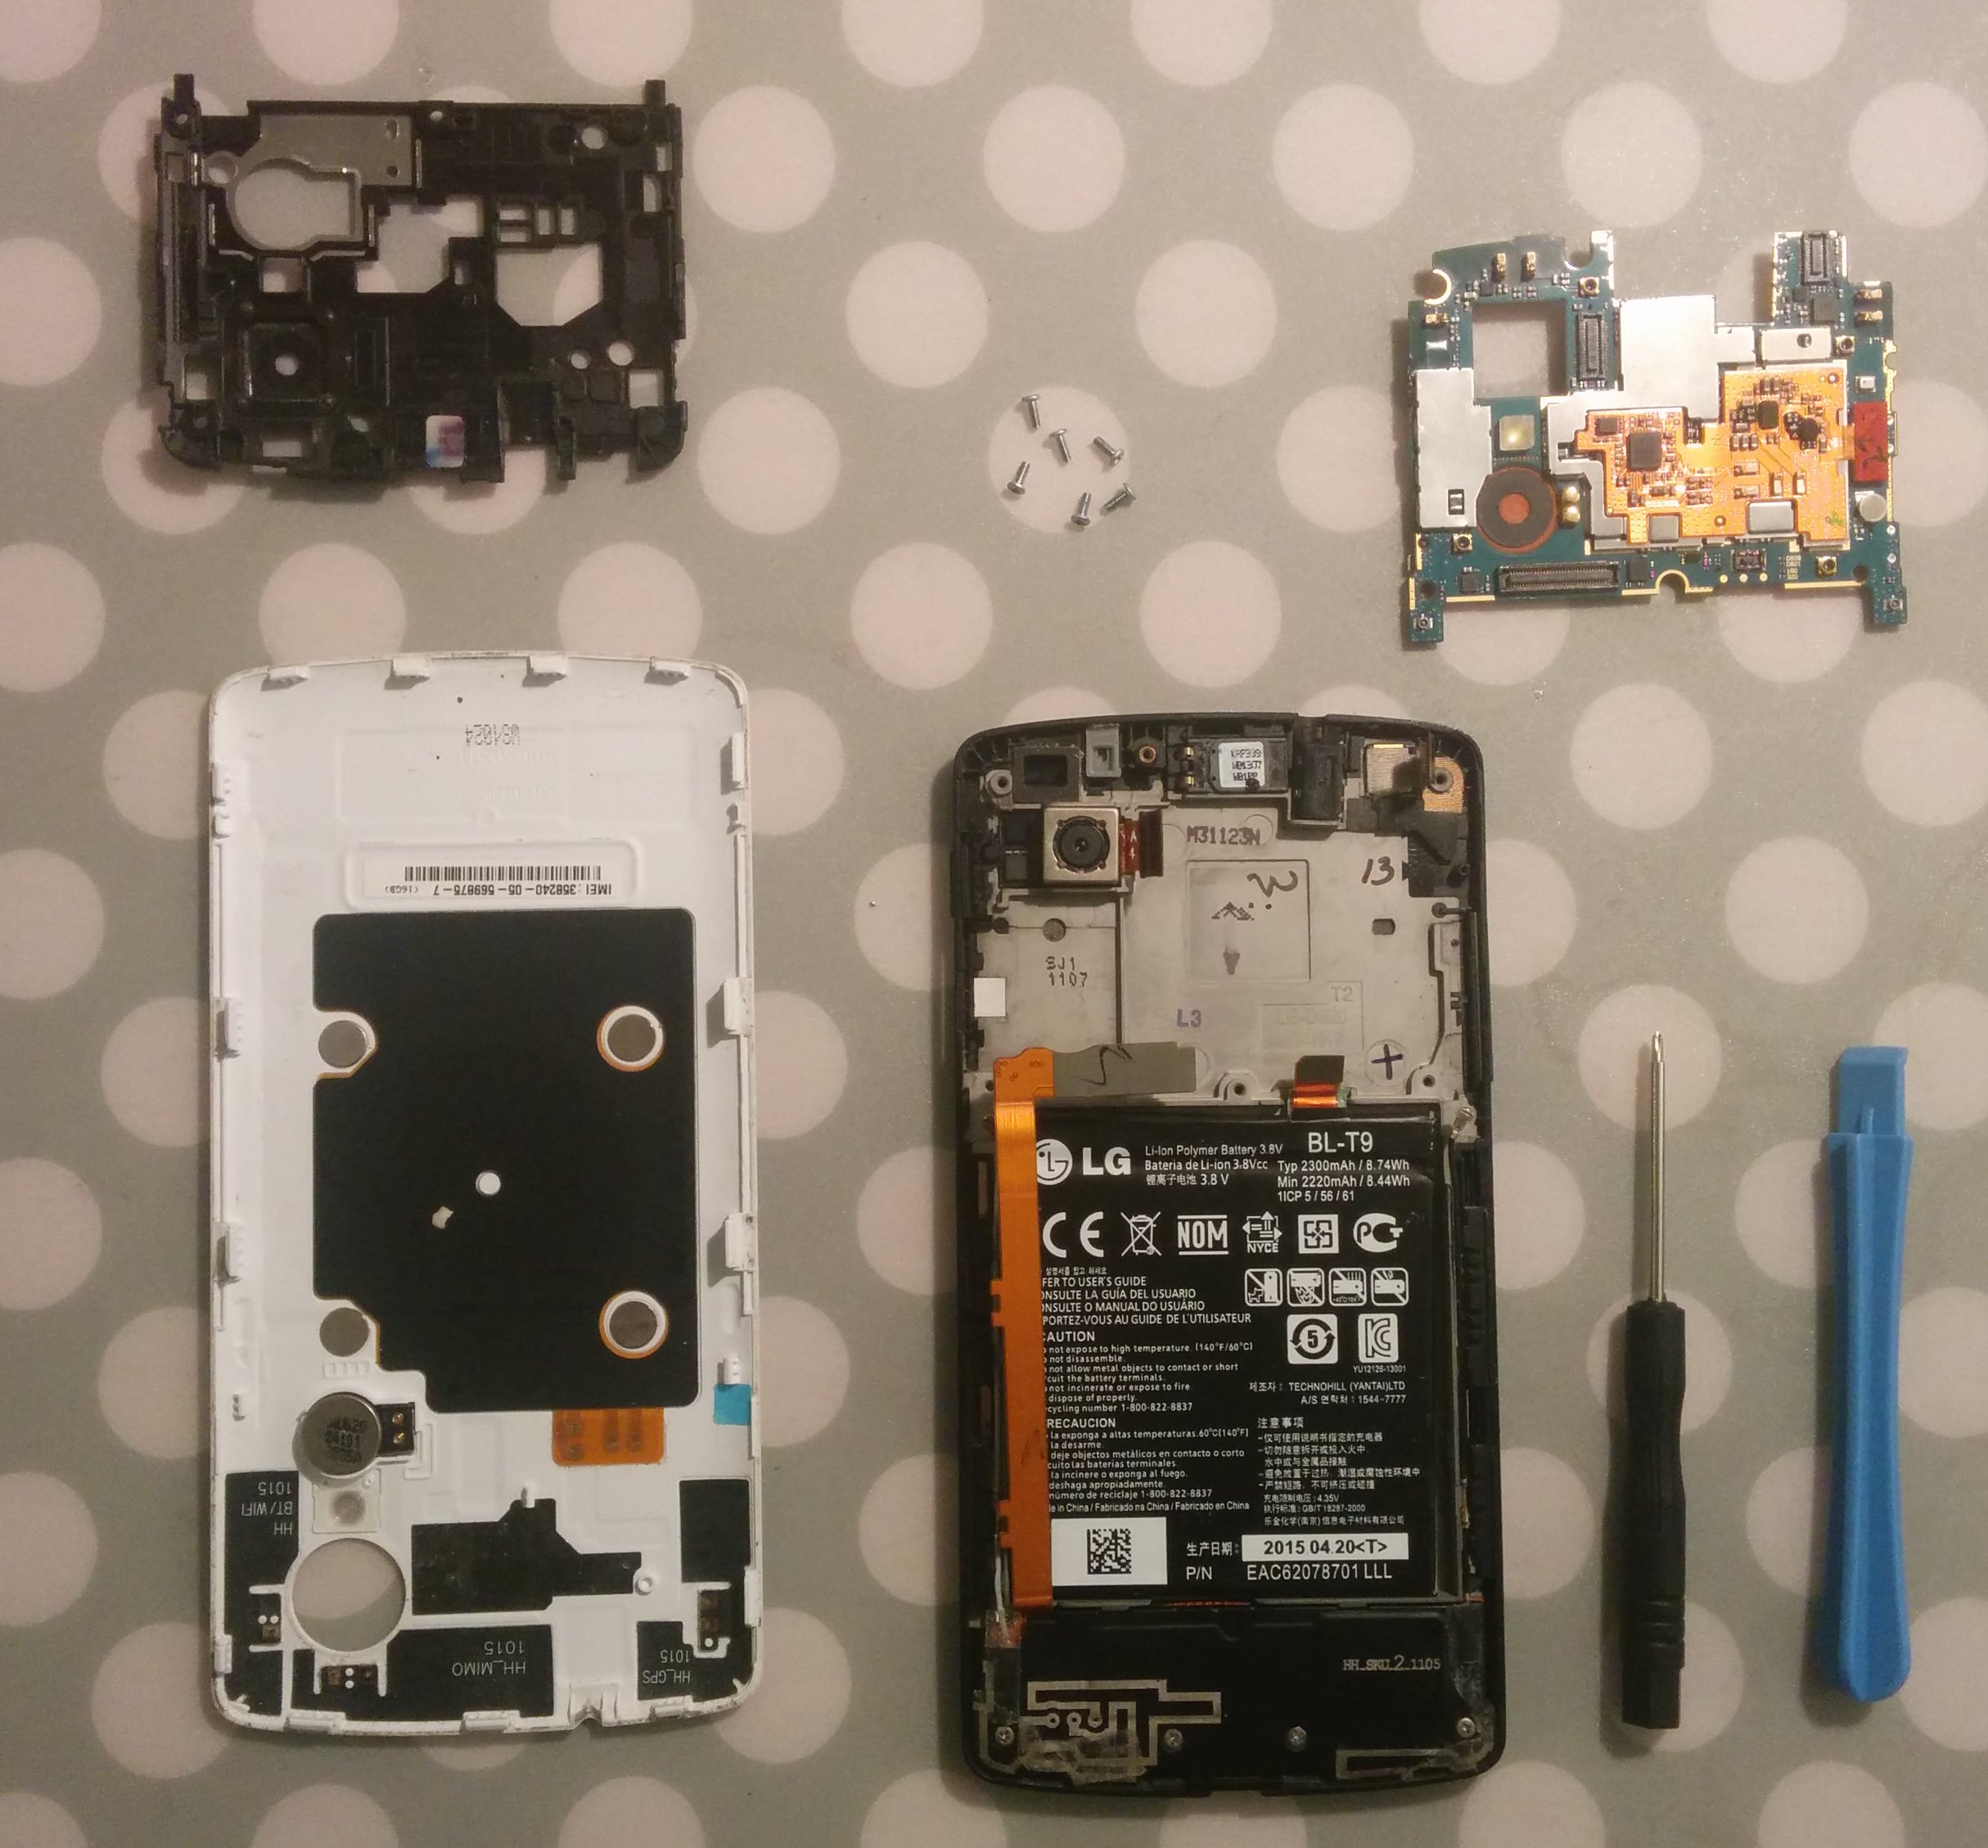 Fixing My Nexus 5 Power Button Issue Frolians Blog 4 Circuit Diagram Desoldering The